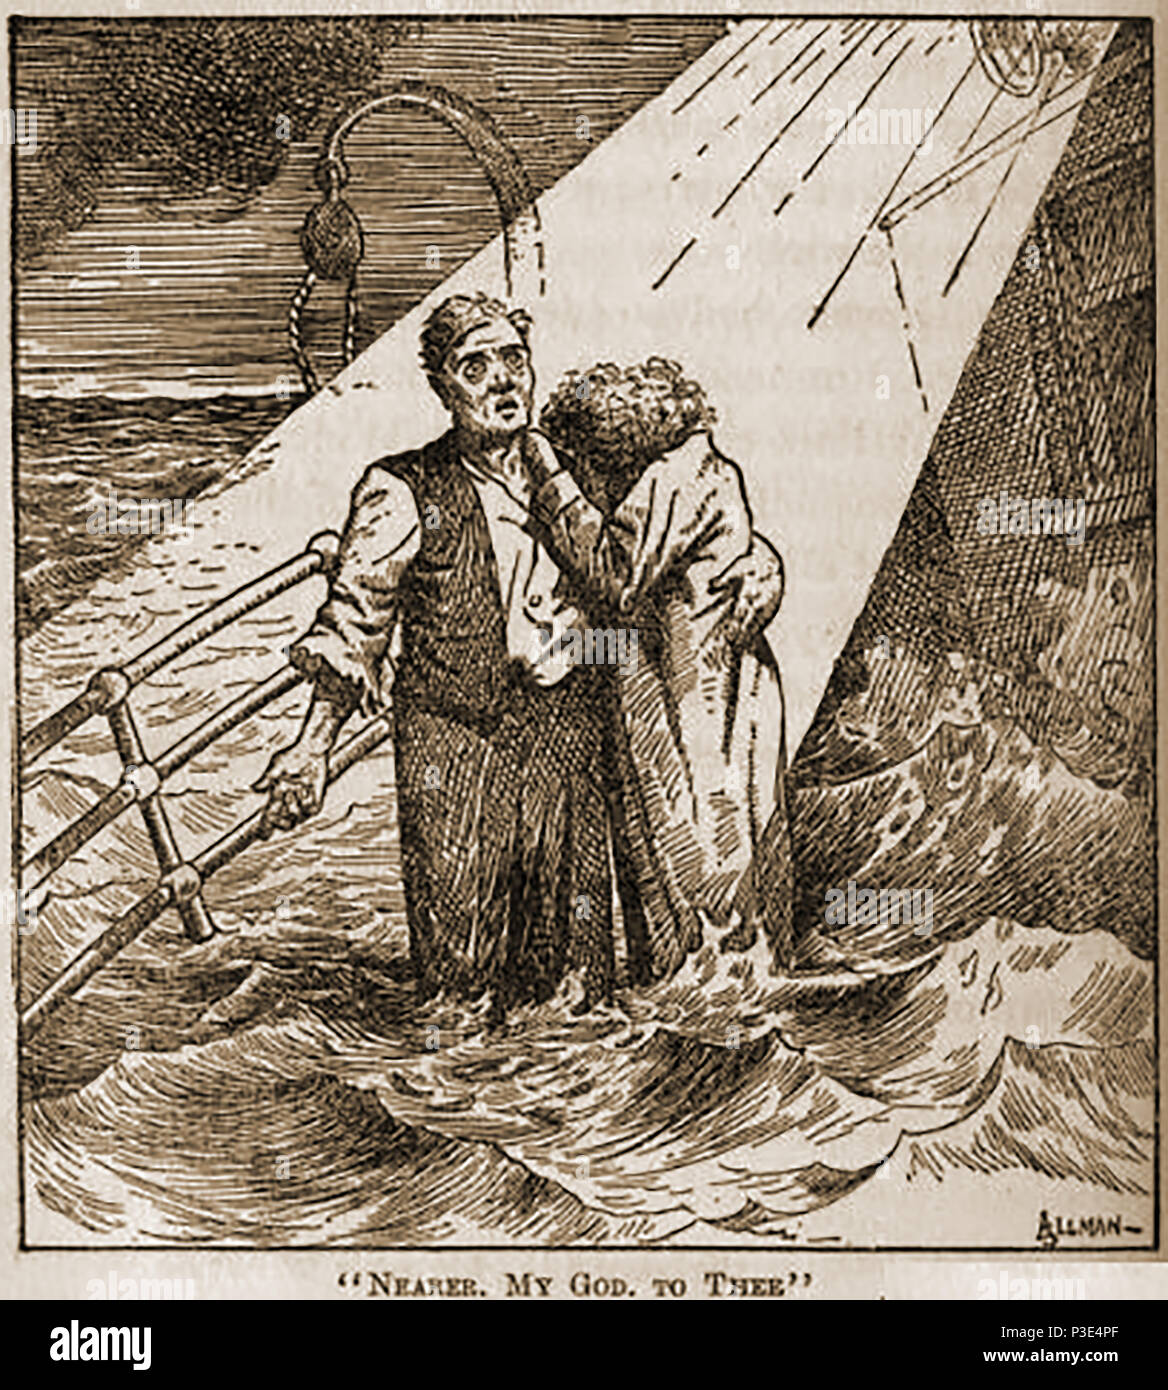 A 1912 newspaper illustration from the Toledo News Bee showing the last moments of passengers on the sinking TITANIC - Stock Image